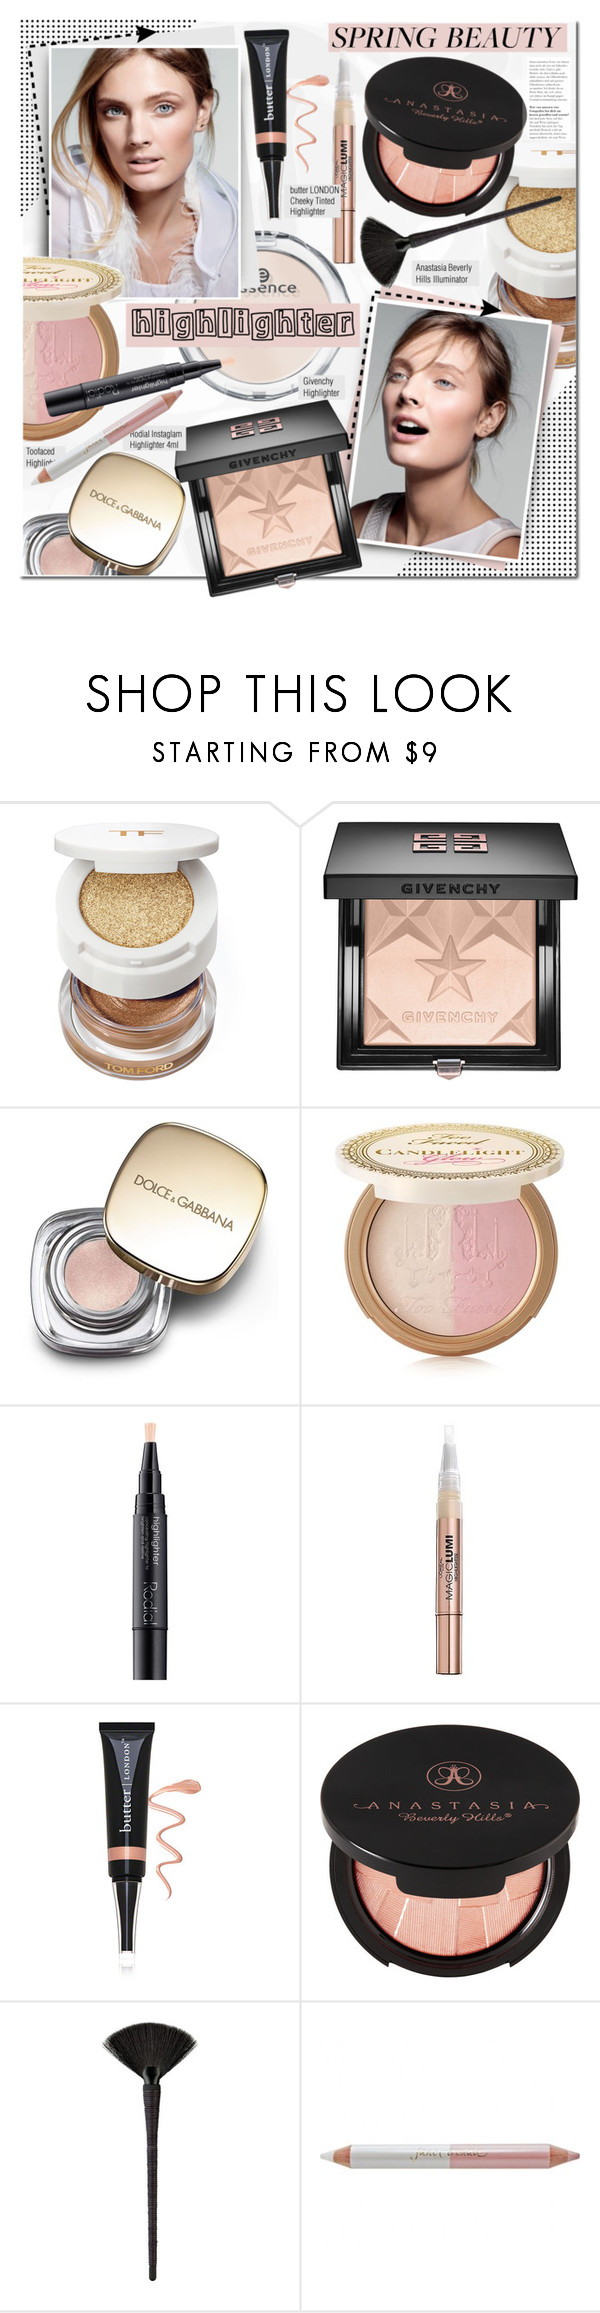 """""""Spring Beauty: Highlighter"""" by mada-malureanu ❤ liked on Polyvore featuring beauty, Tom Ford, Givenchy, Dolce&Gabbana, Too Faced Cosmetics, Rodial, L'Oréal Paris, Butter London, Anastasia Beverly Hills and Japonesque"""